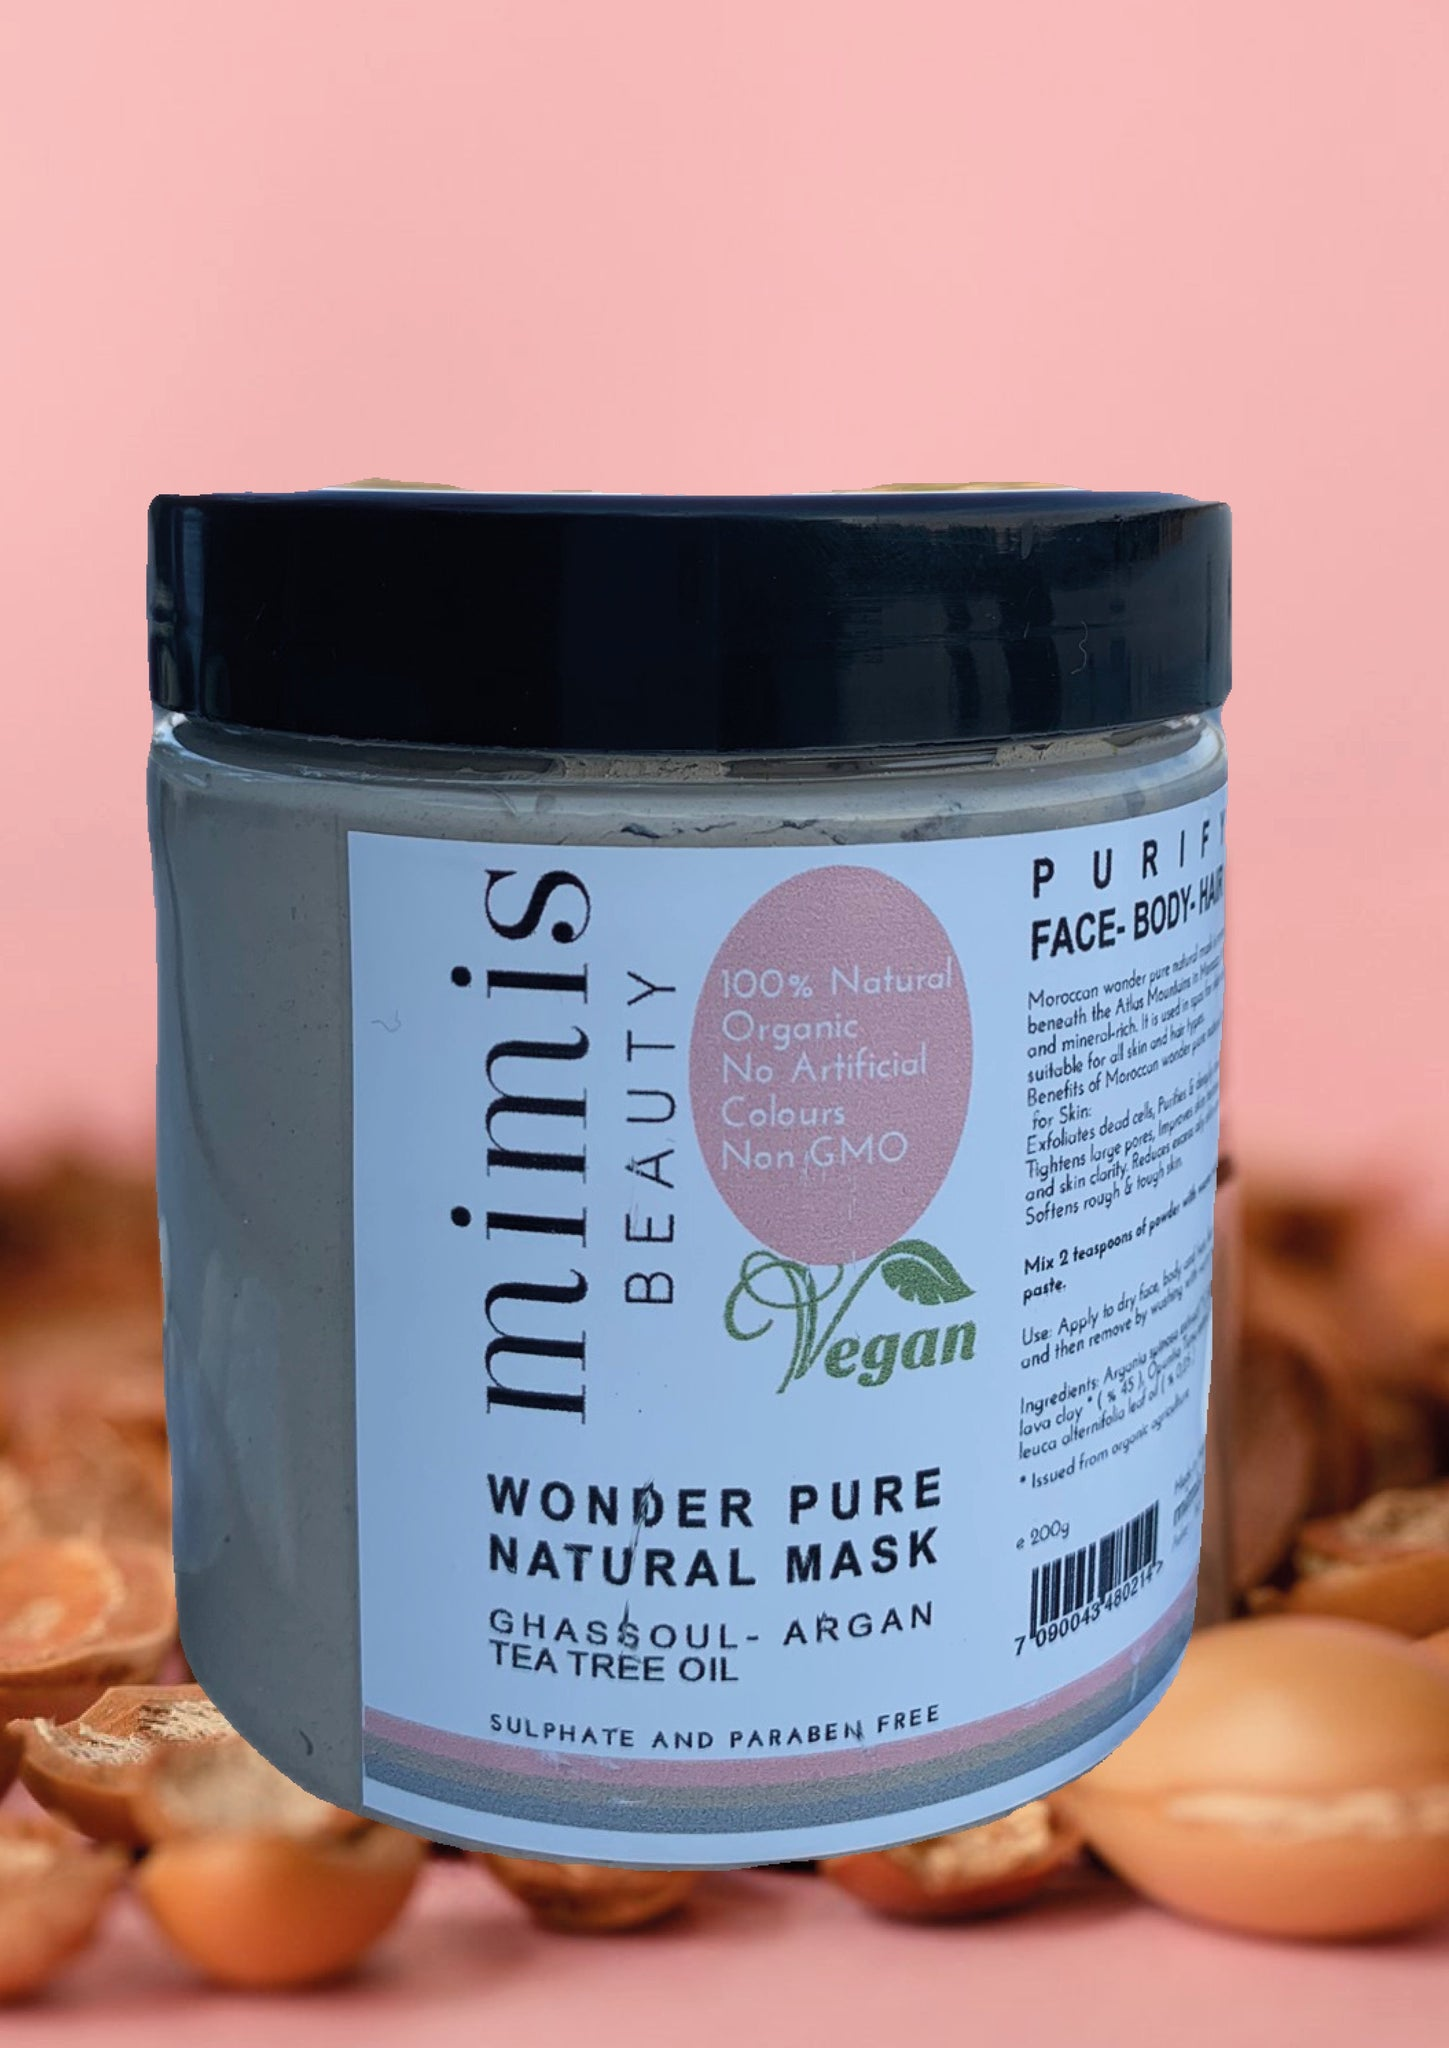 Wonder pure natural mask